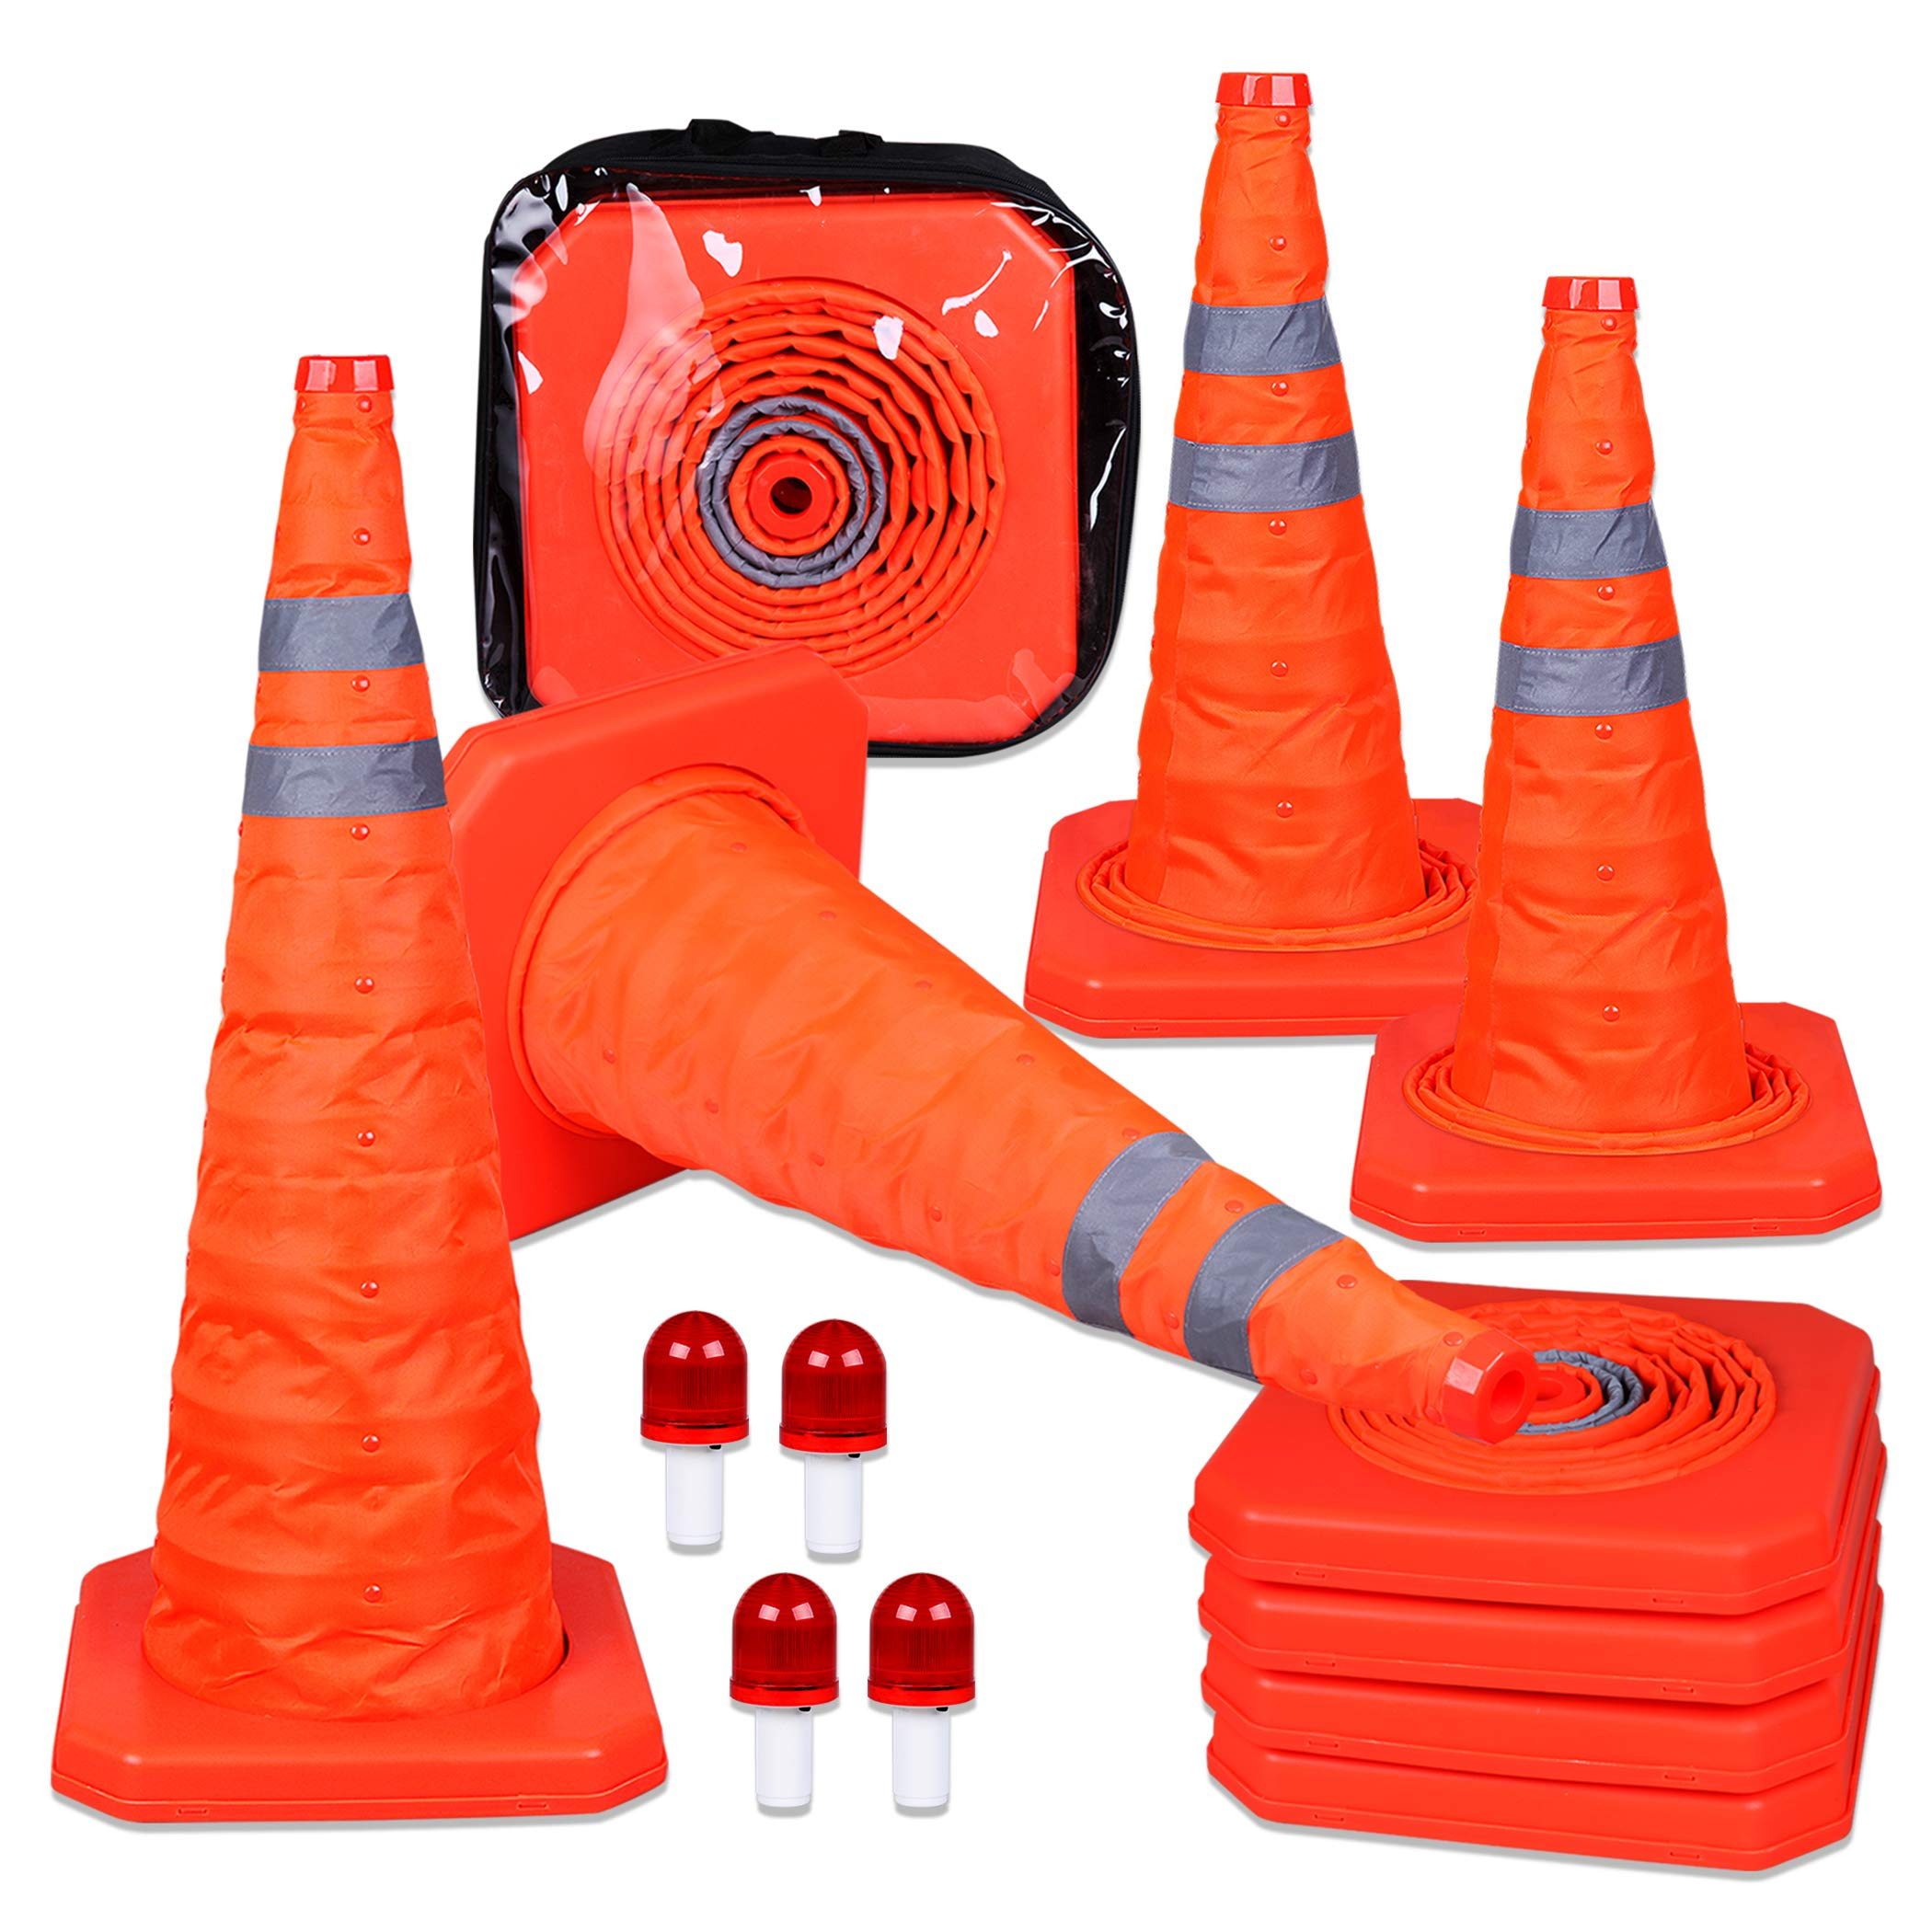 CARTMAN 27.5 inch Collapsible Traffic Cones with LED Light Multi Purpose Pop up Reflective Safety Cone 4PK by CARTMAN (Image #1)